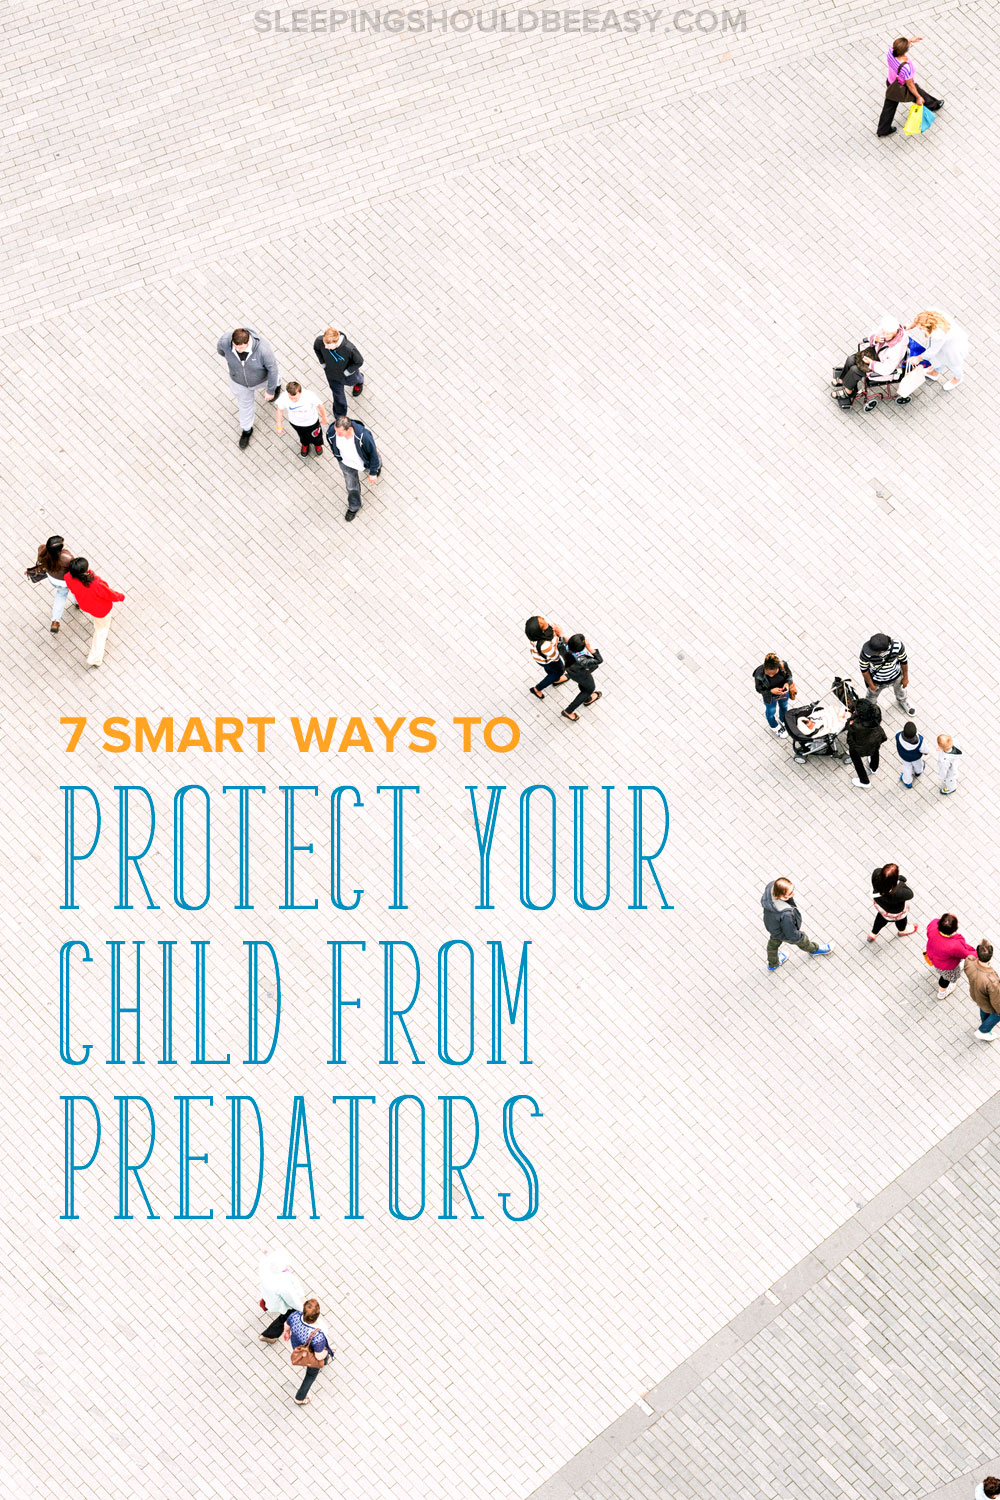 Worried about predators, both strangers and those you might know? Here are 7 smart ways to protect your child from predators.